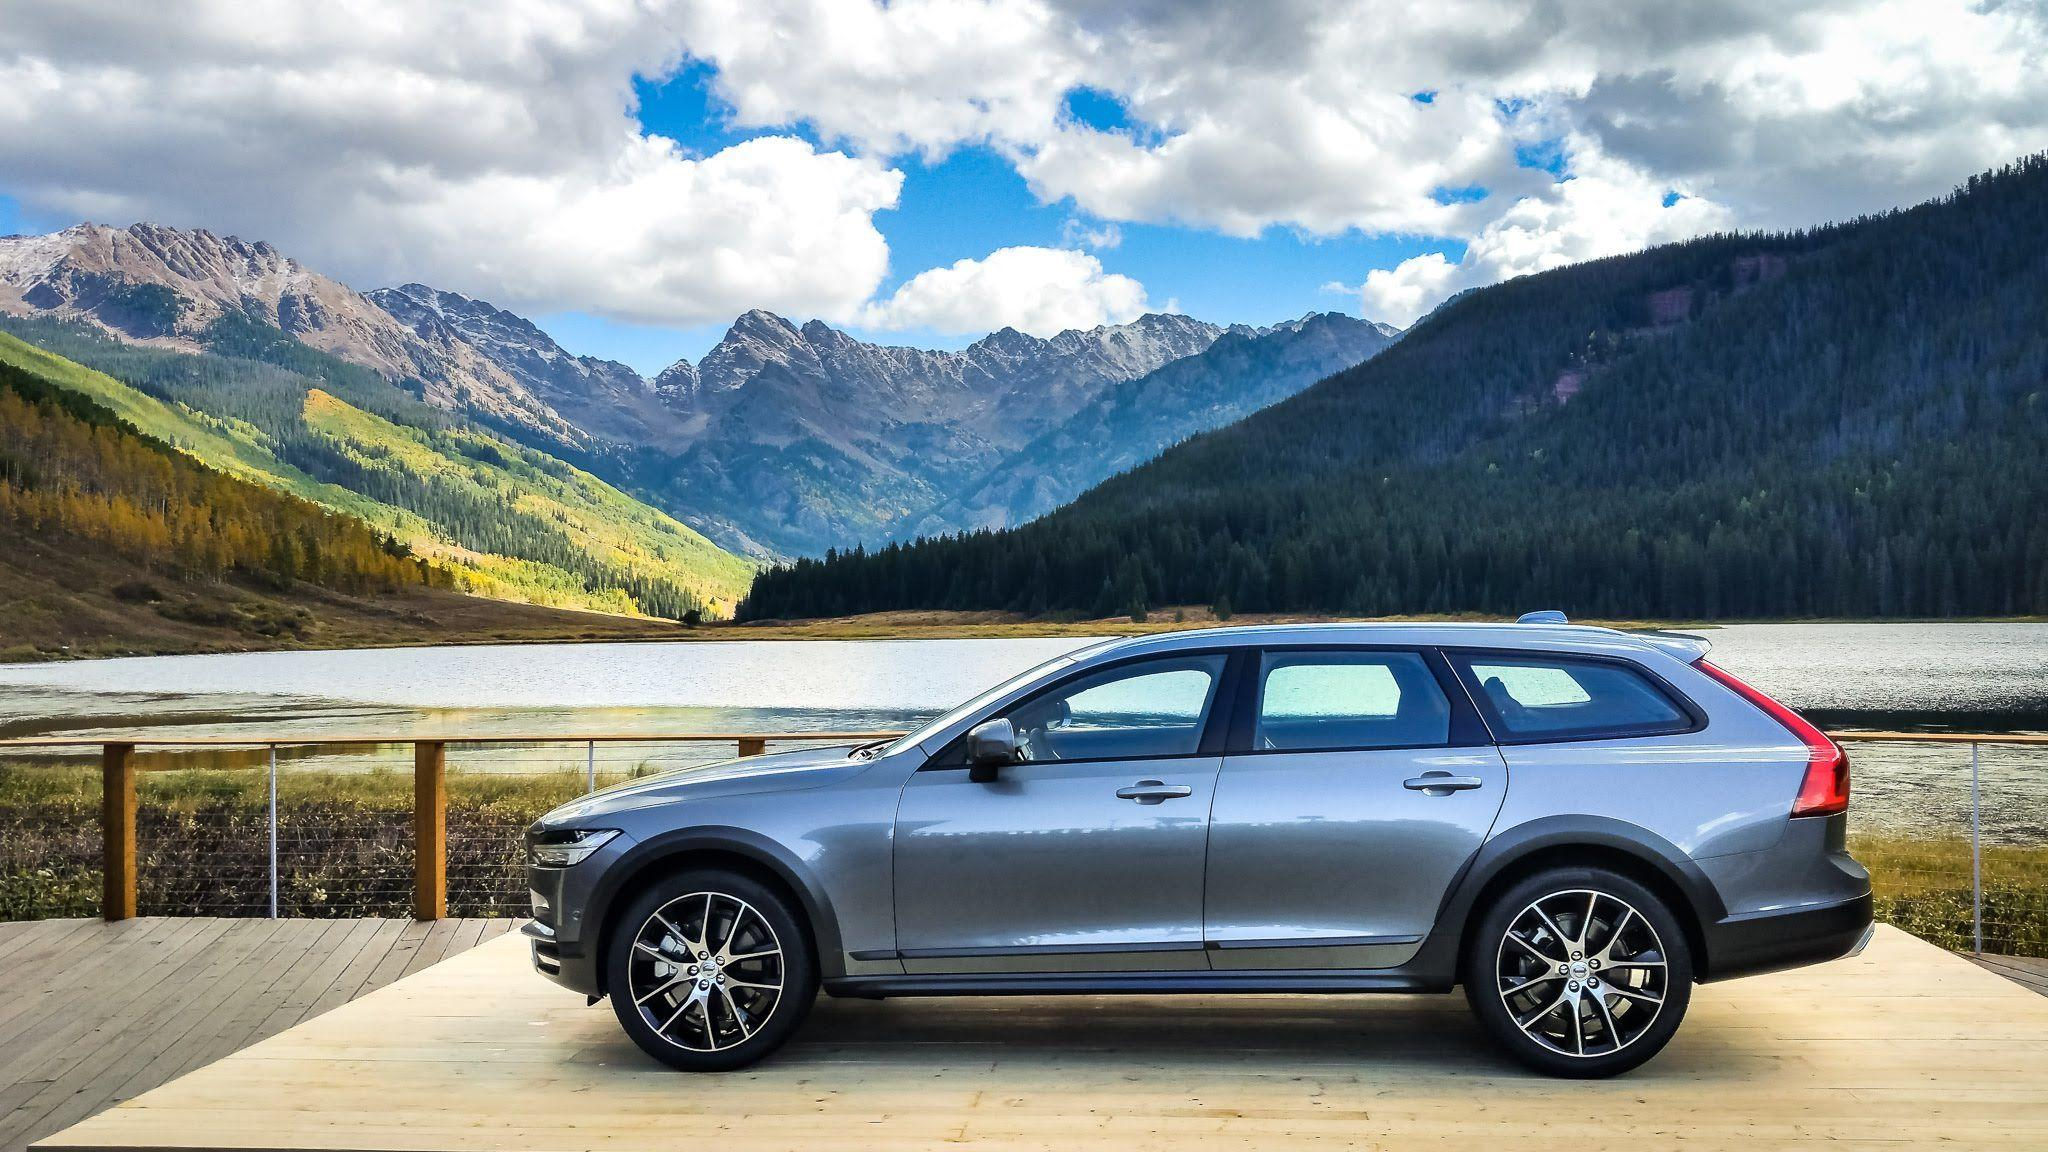 Download New Volvo V90 Cross Country Wallpaper Desktop Background ...